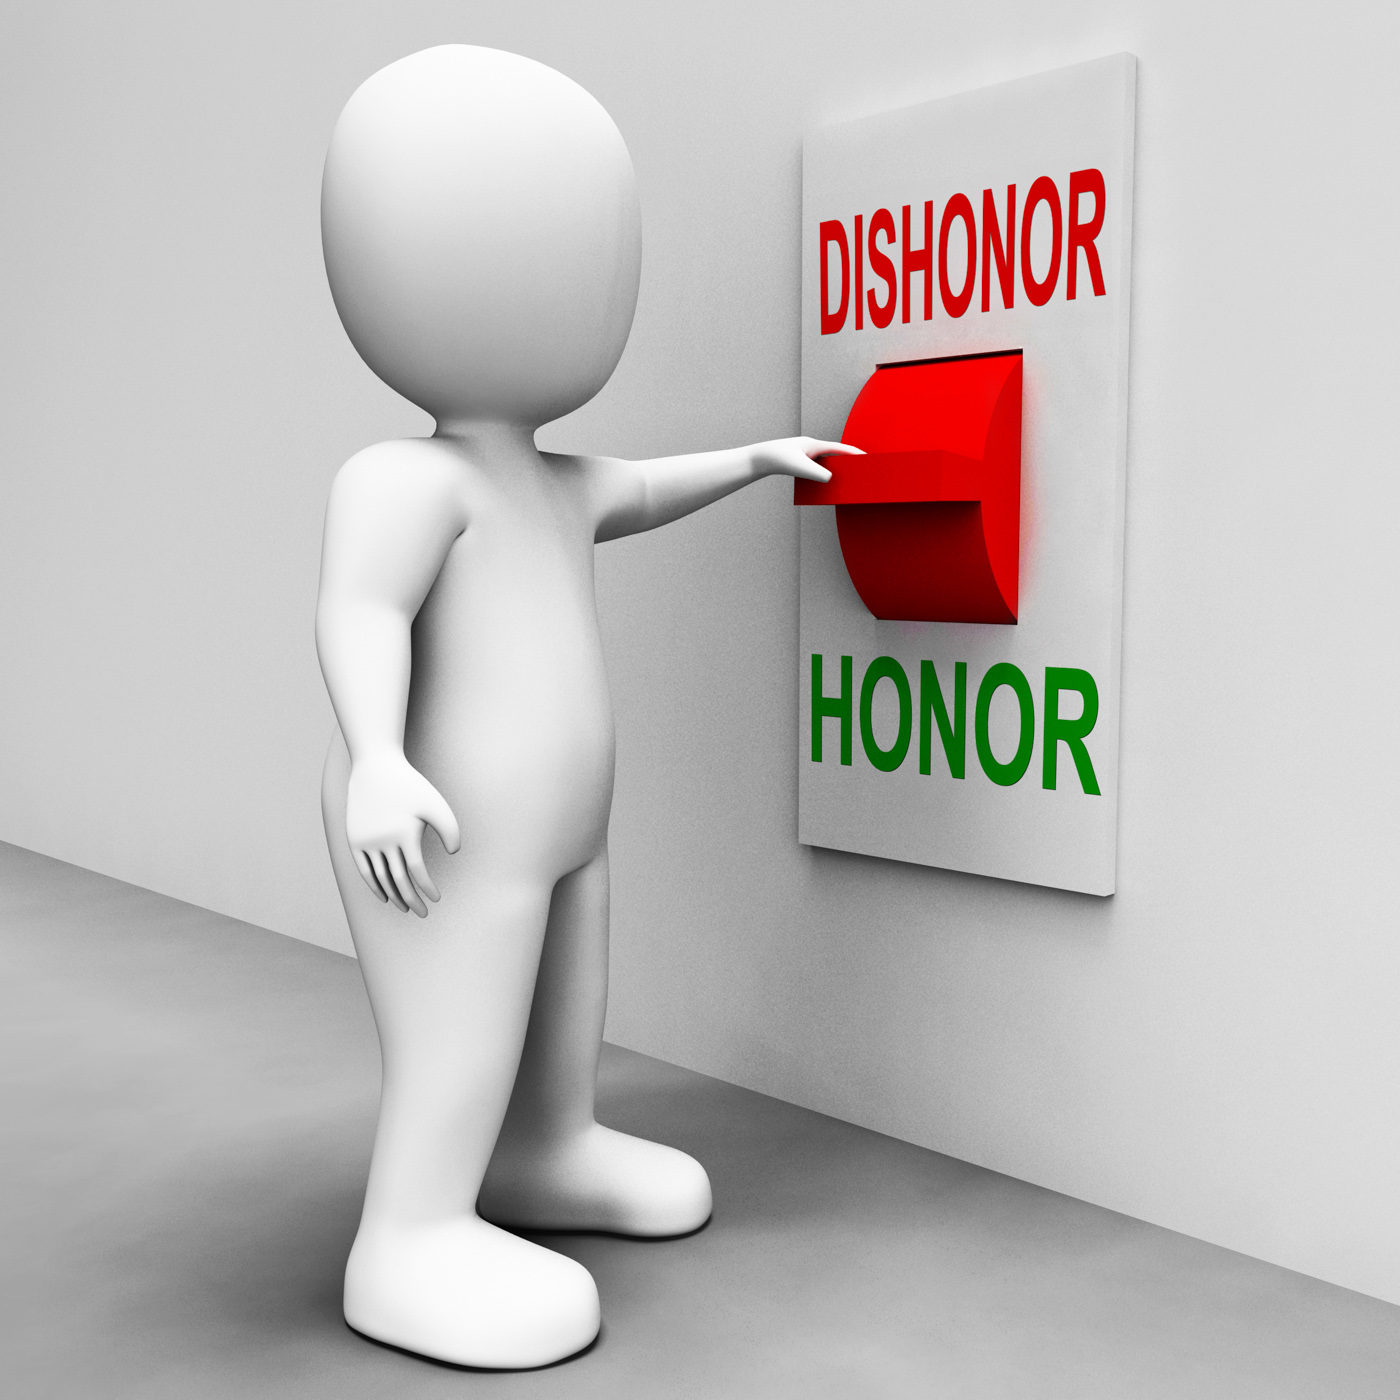 Dishonor honor switch shows integrity and morals photo